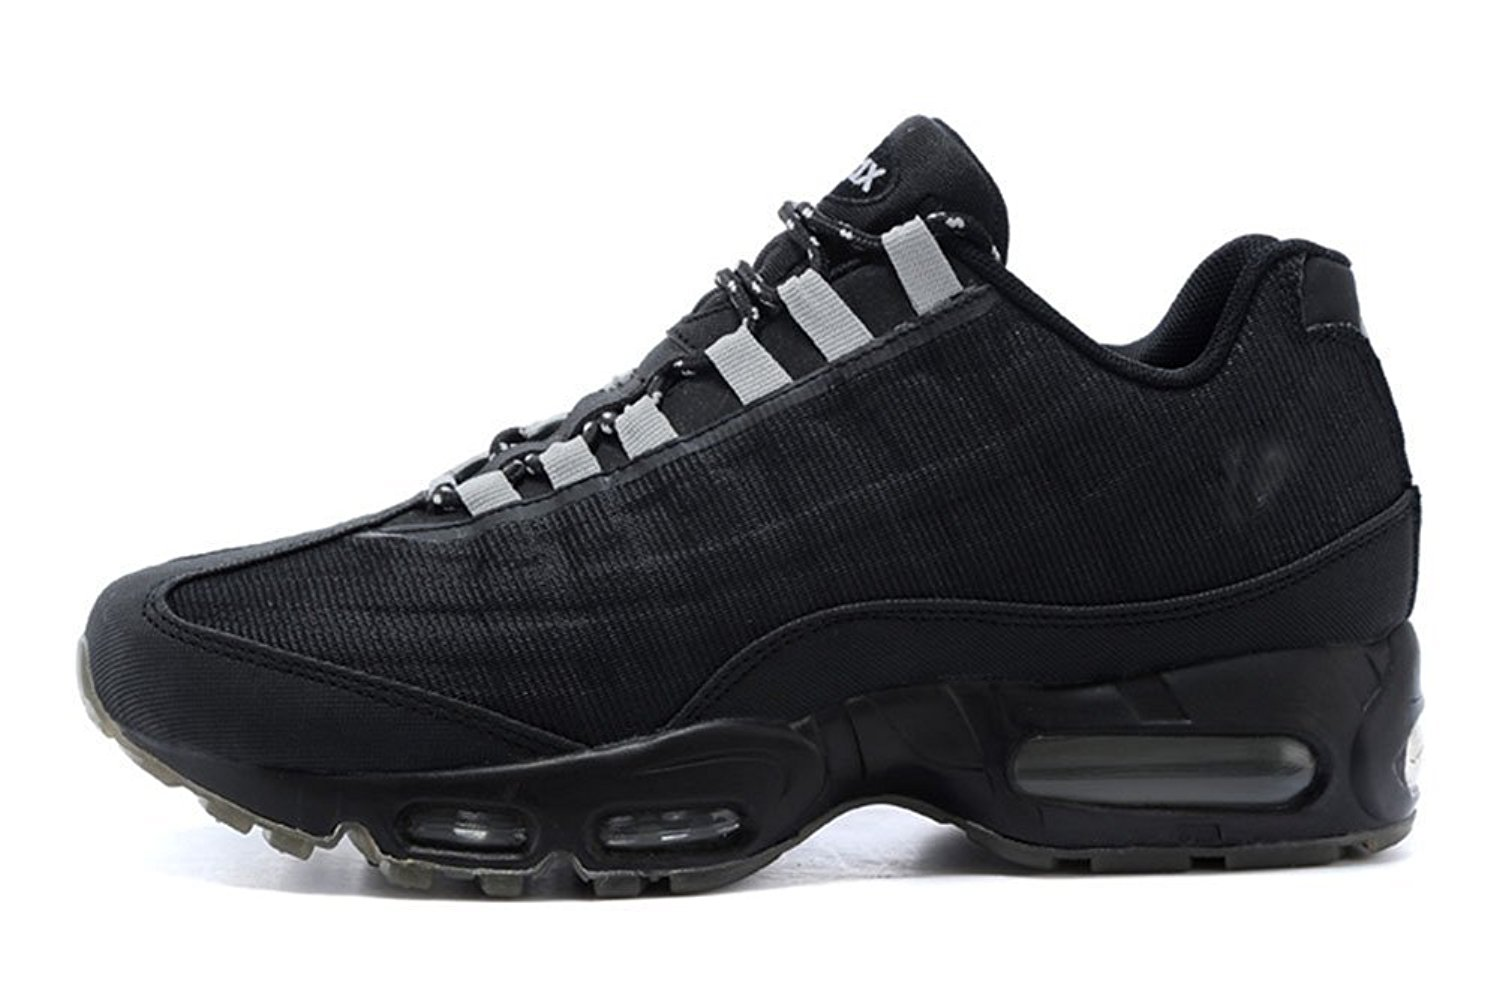 cde266f555 Get Quotations · Men's Air Max 95 Sneakerboot Running Sneakers Sports Shoes